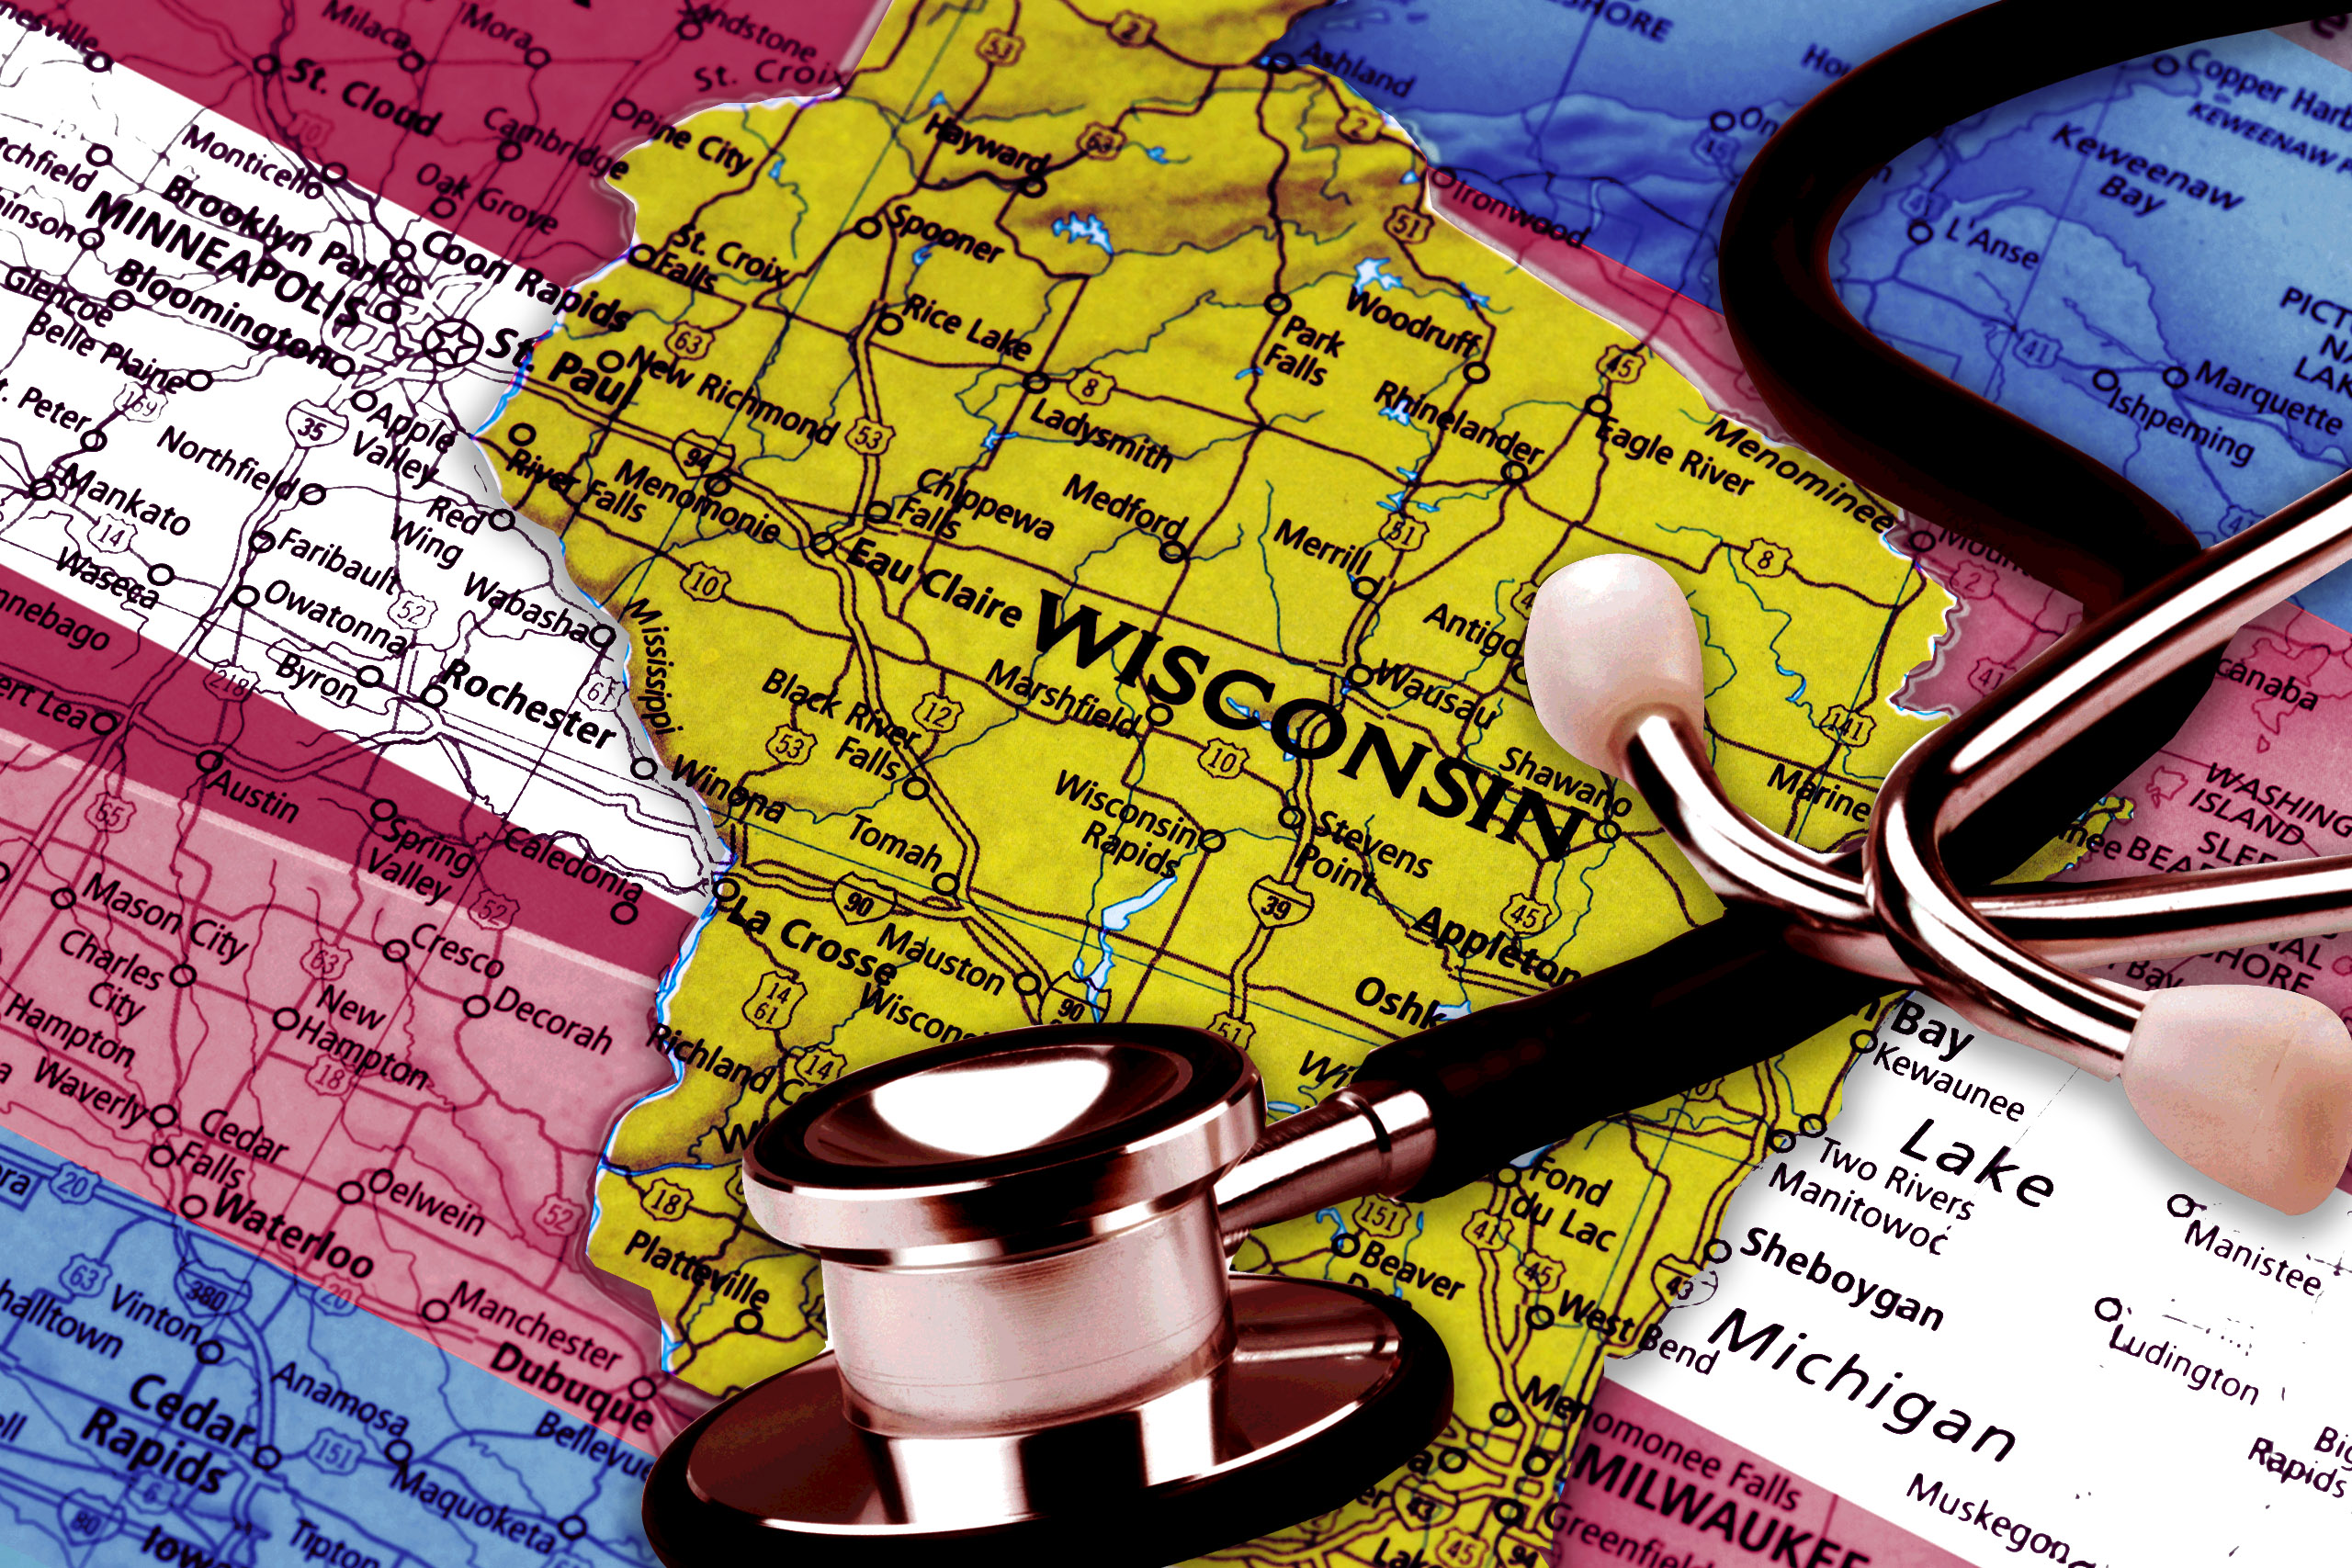 WI Healthcare image